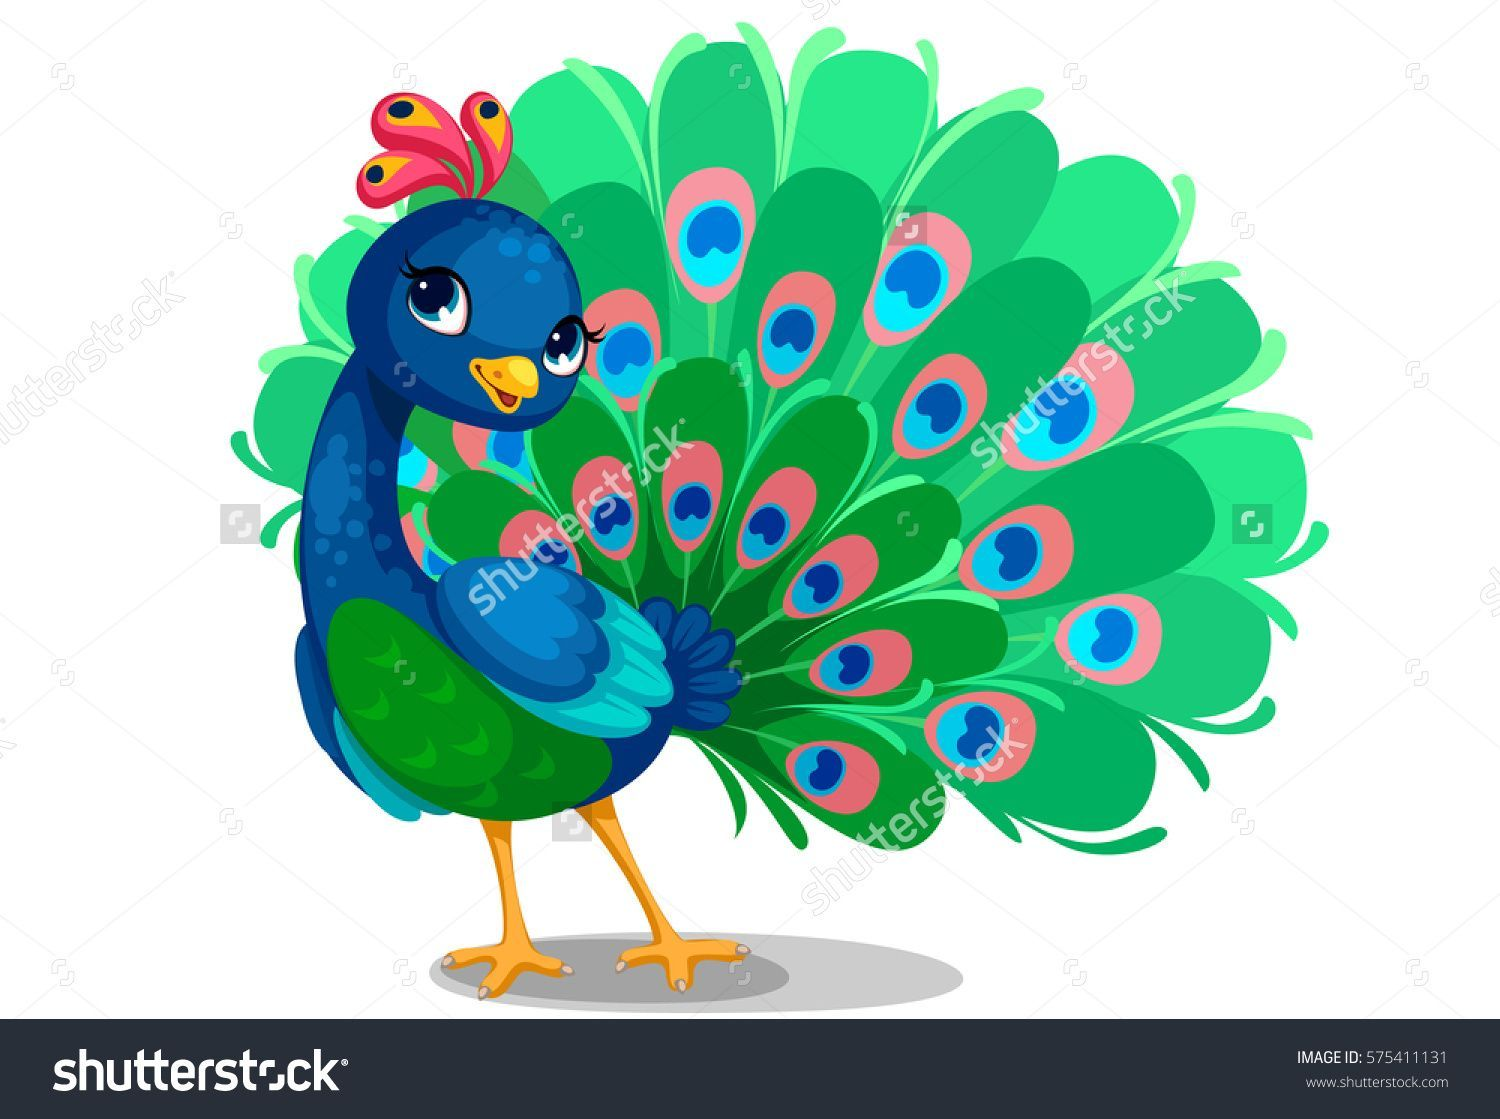 image result for peacock cartoon transparent clip art peacock drawing outline drawings cartoon design image result for peacock cartoon